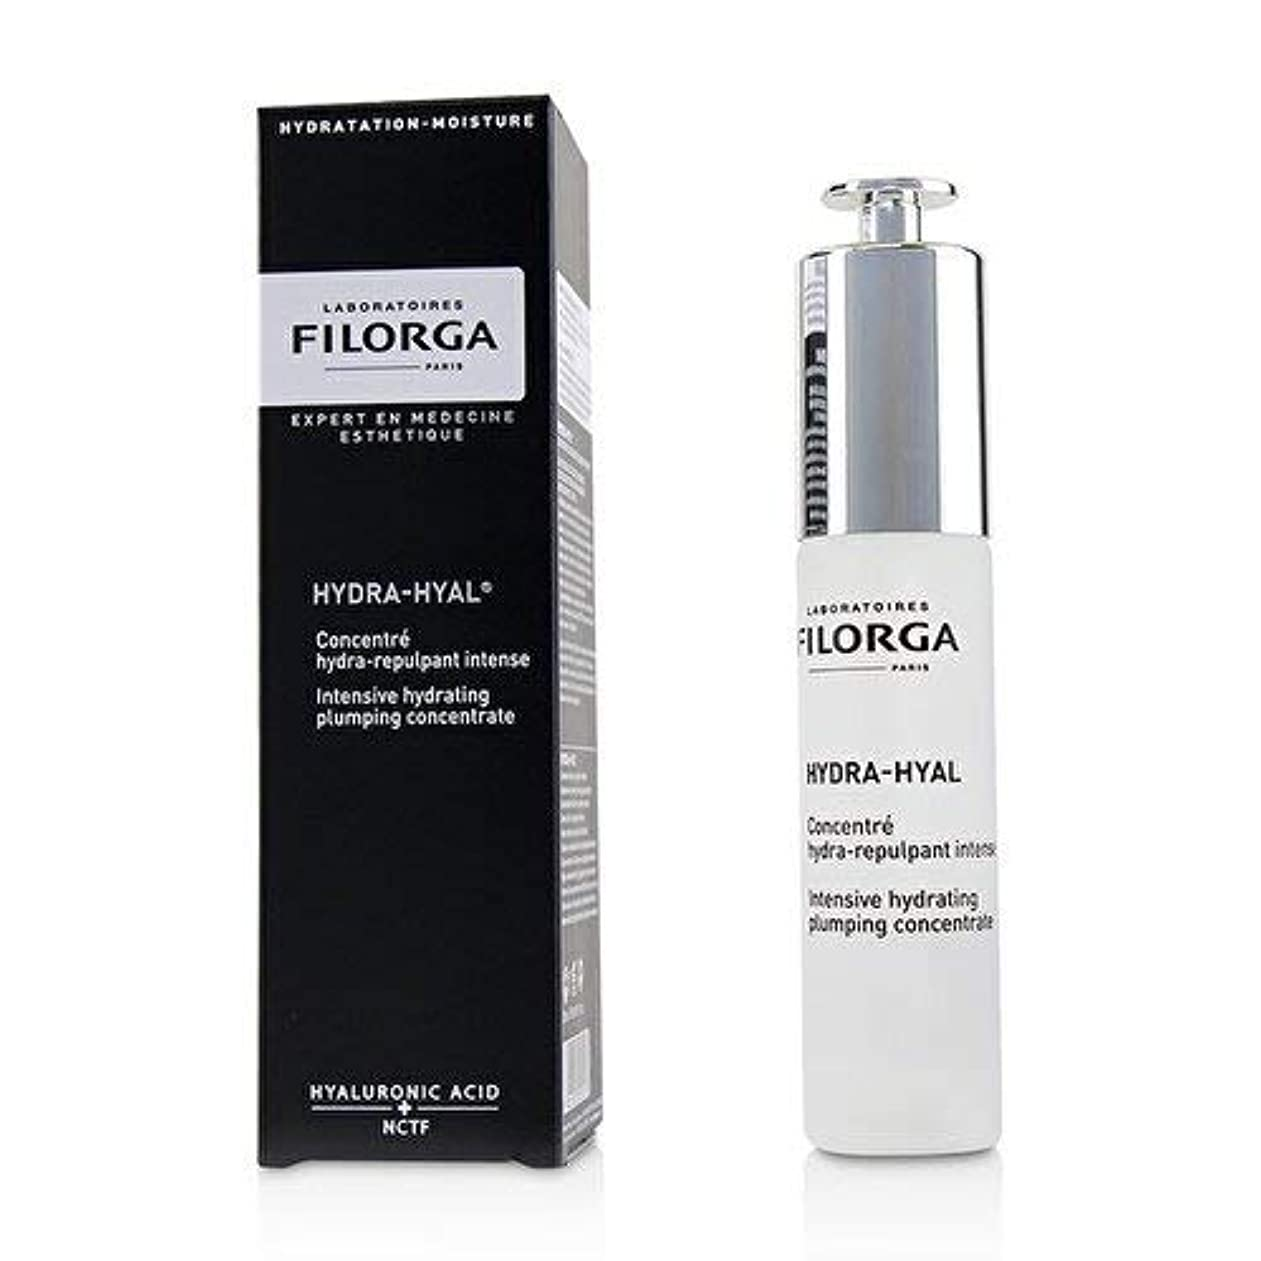 まさに成熟した広がりFilorga Hydra-Hyal Intensive Hydrating Plumping Concentrate 1V1320DM/359720 30ml/1oz並行輸入品